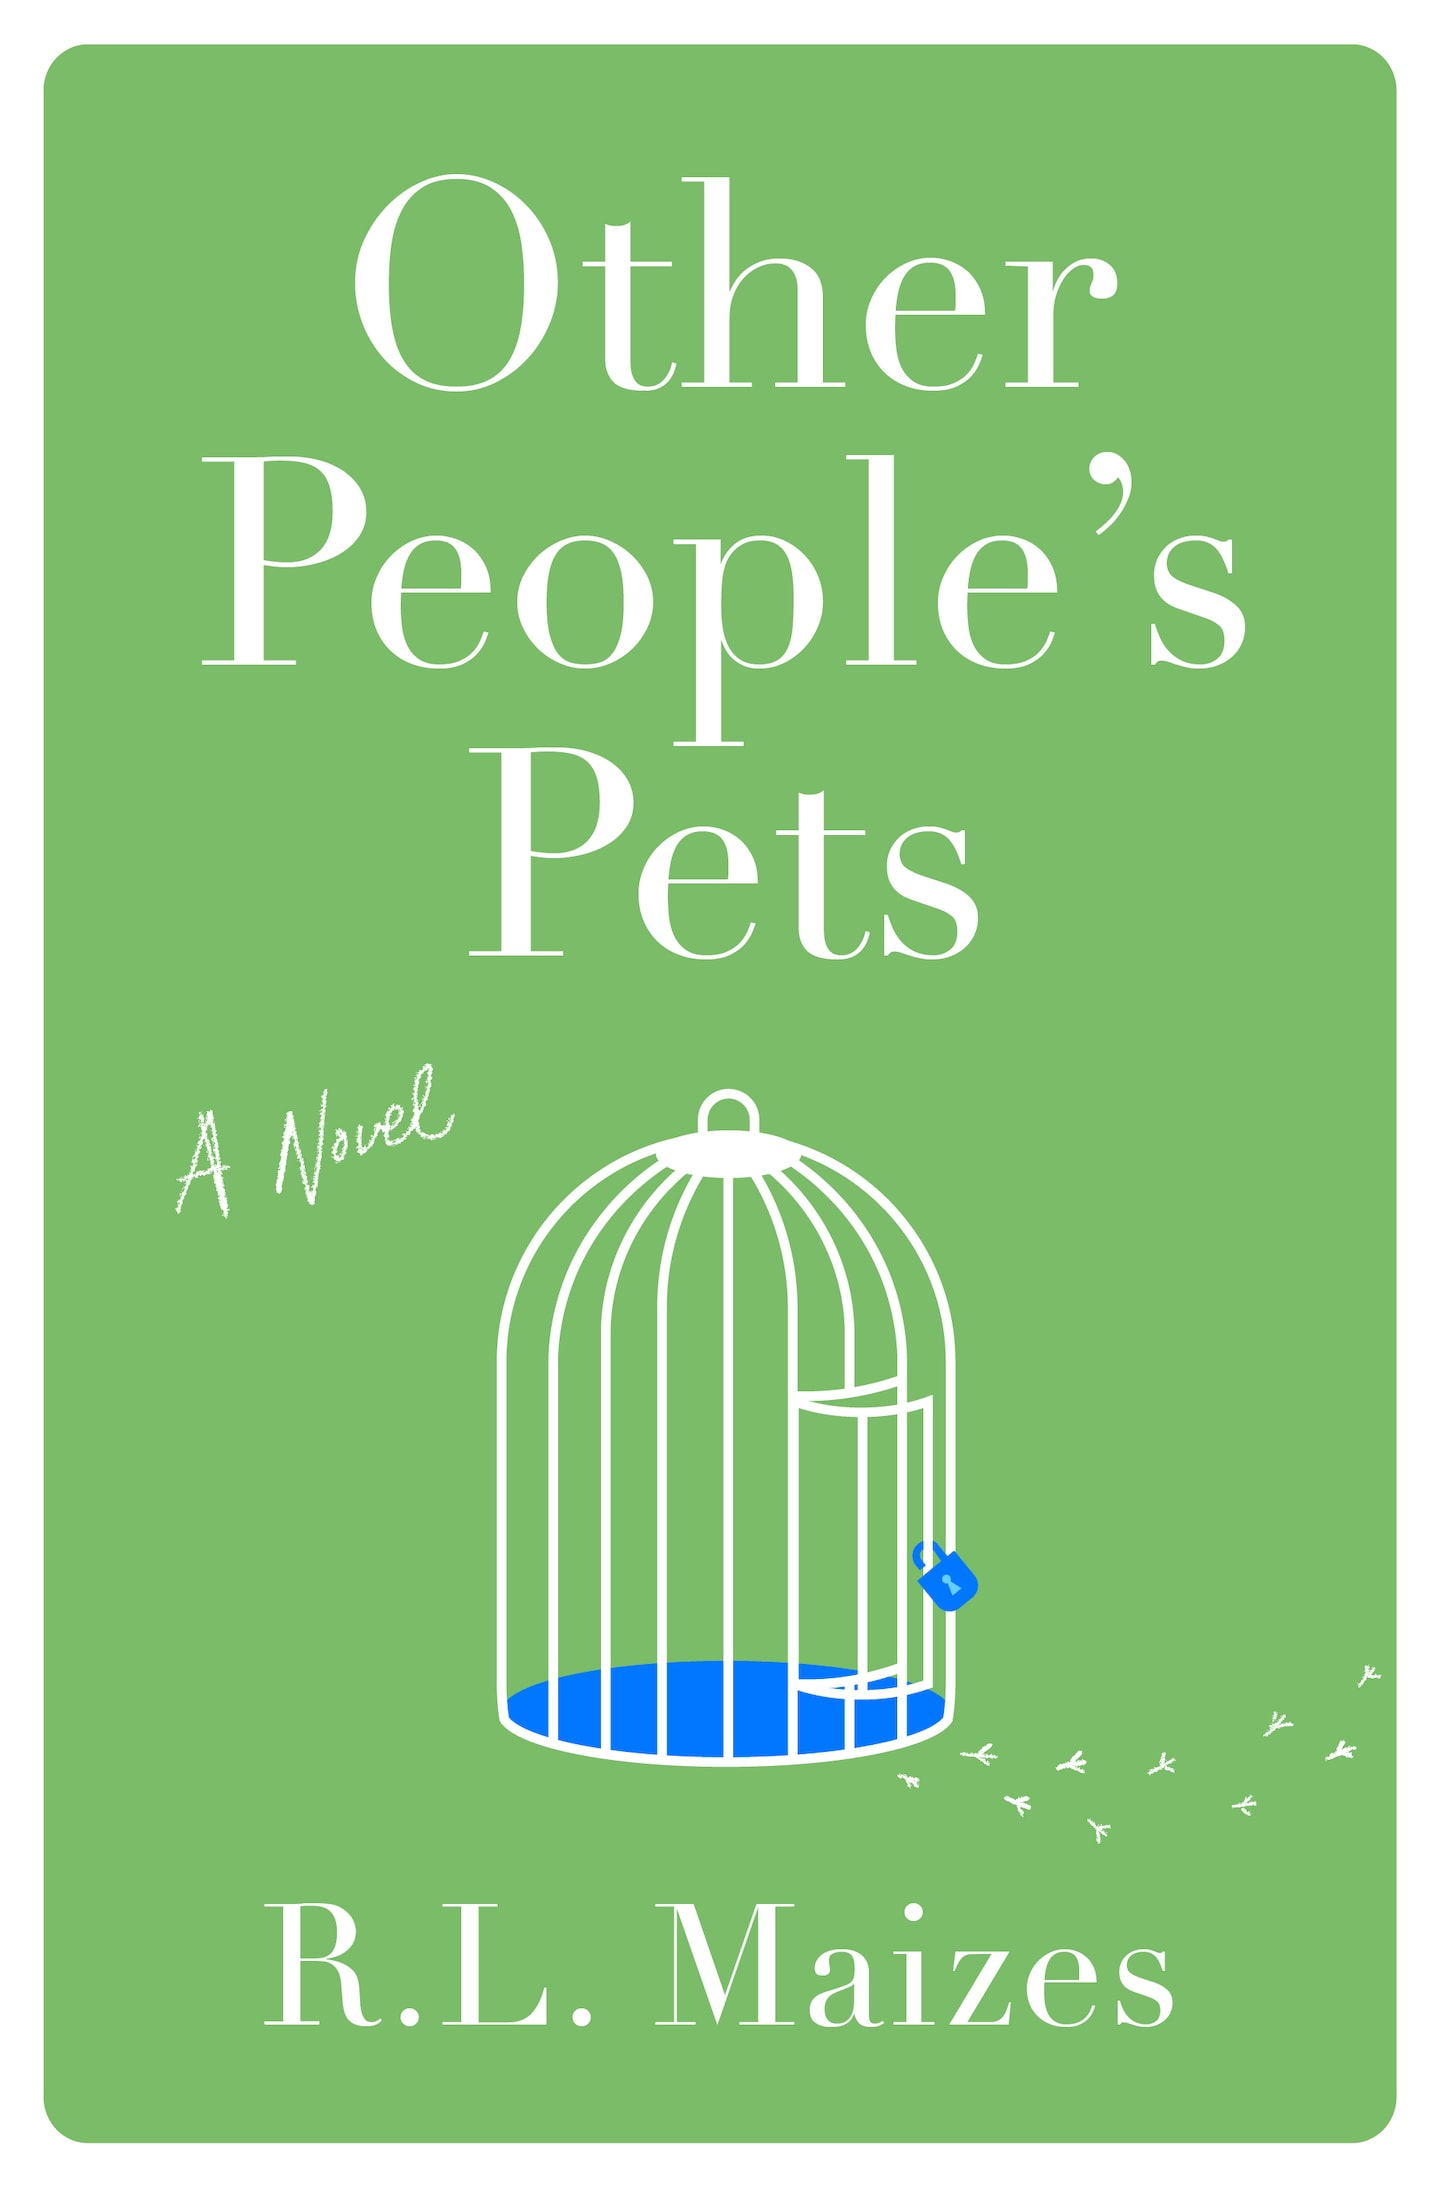 'Other People's Pets' by R.L. Maizes book review